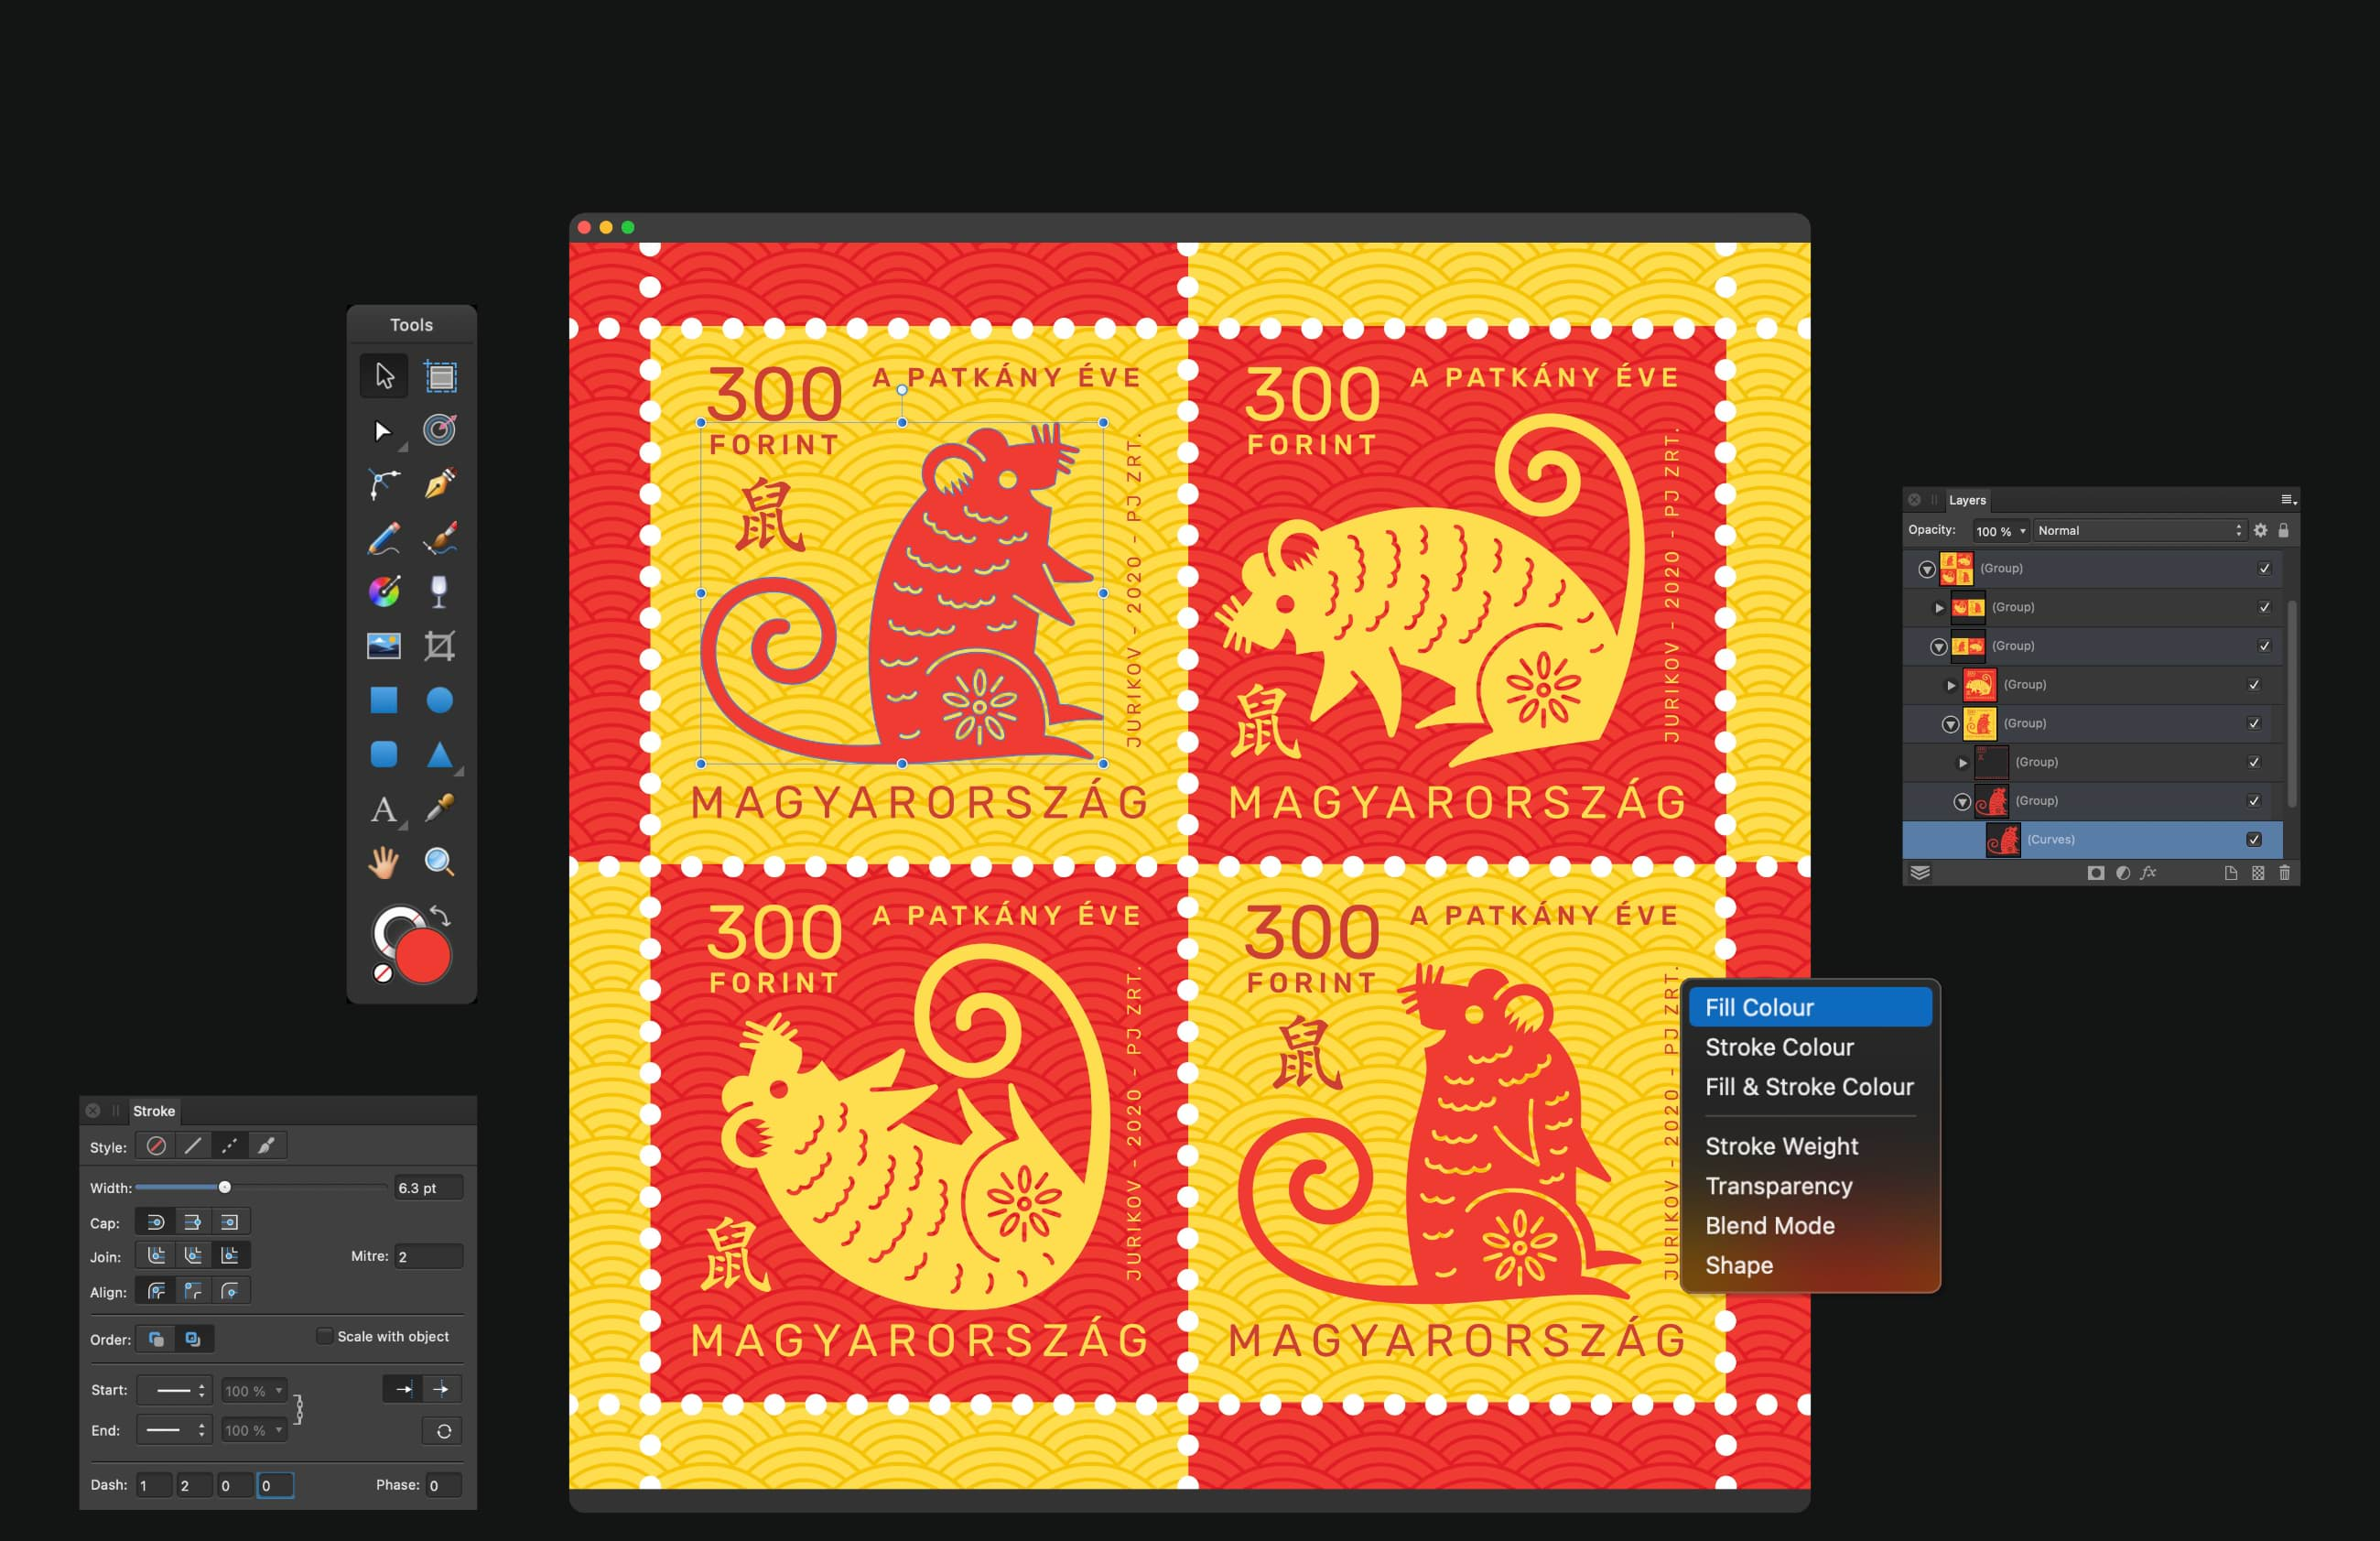 Menu with Fill Color selected atop a red and yellow set of stamps, surrounded by other open menus and tools